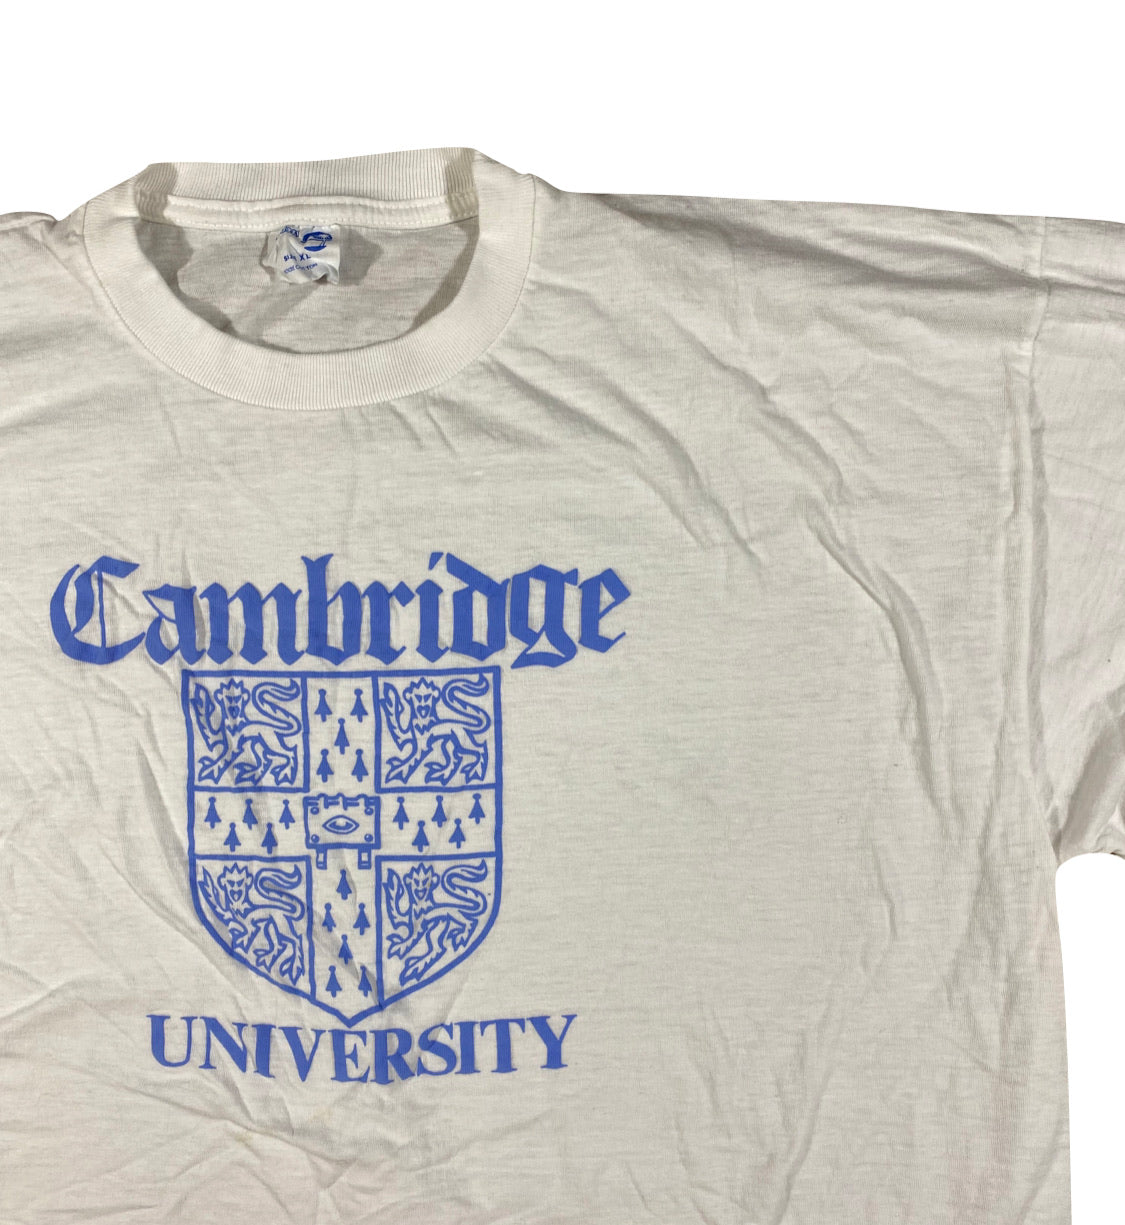 Cambridge university tee. XL